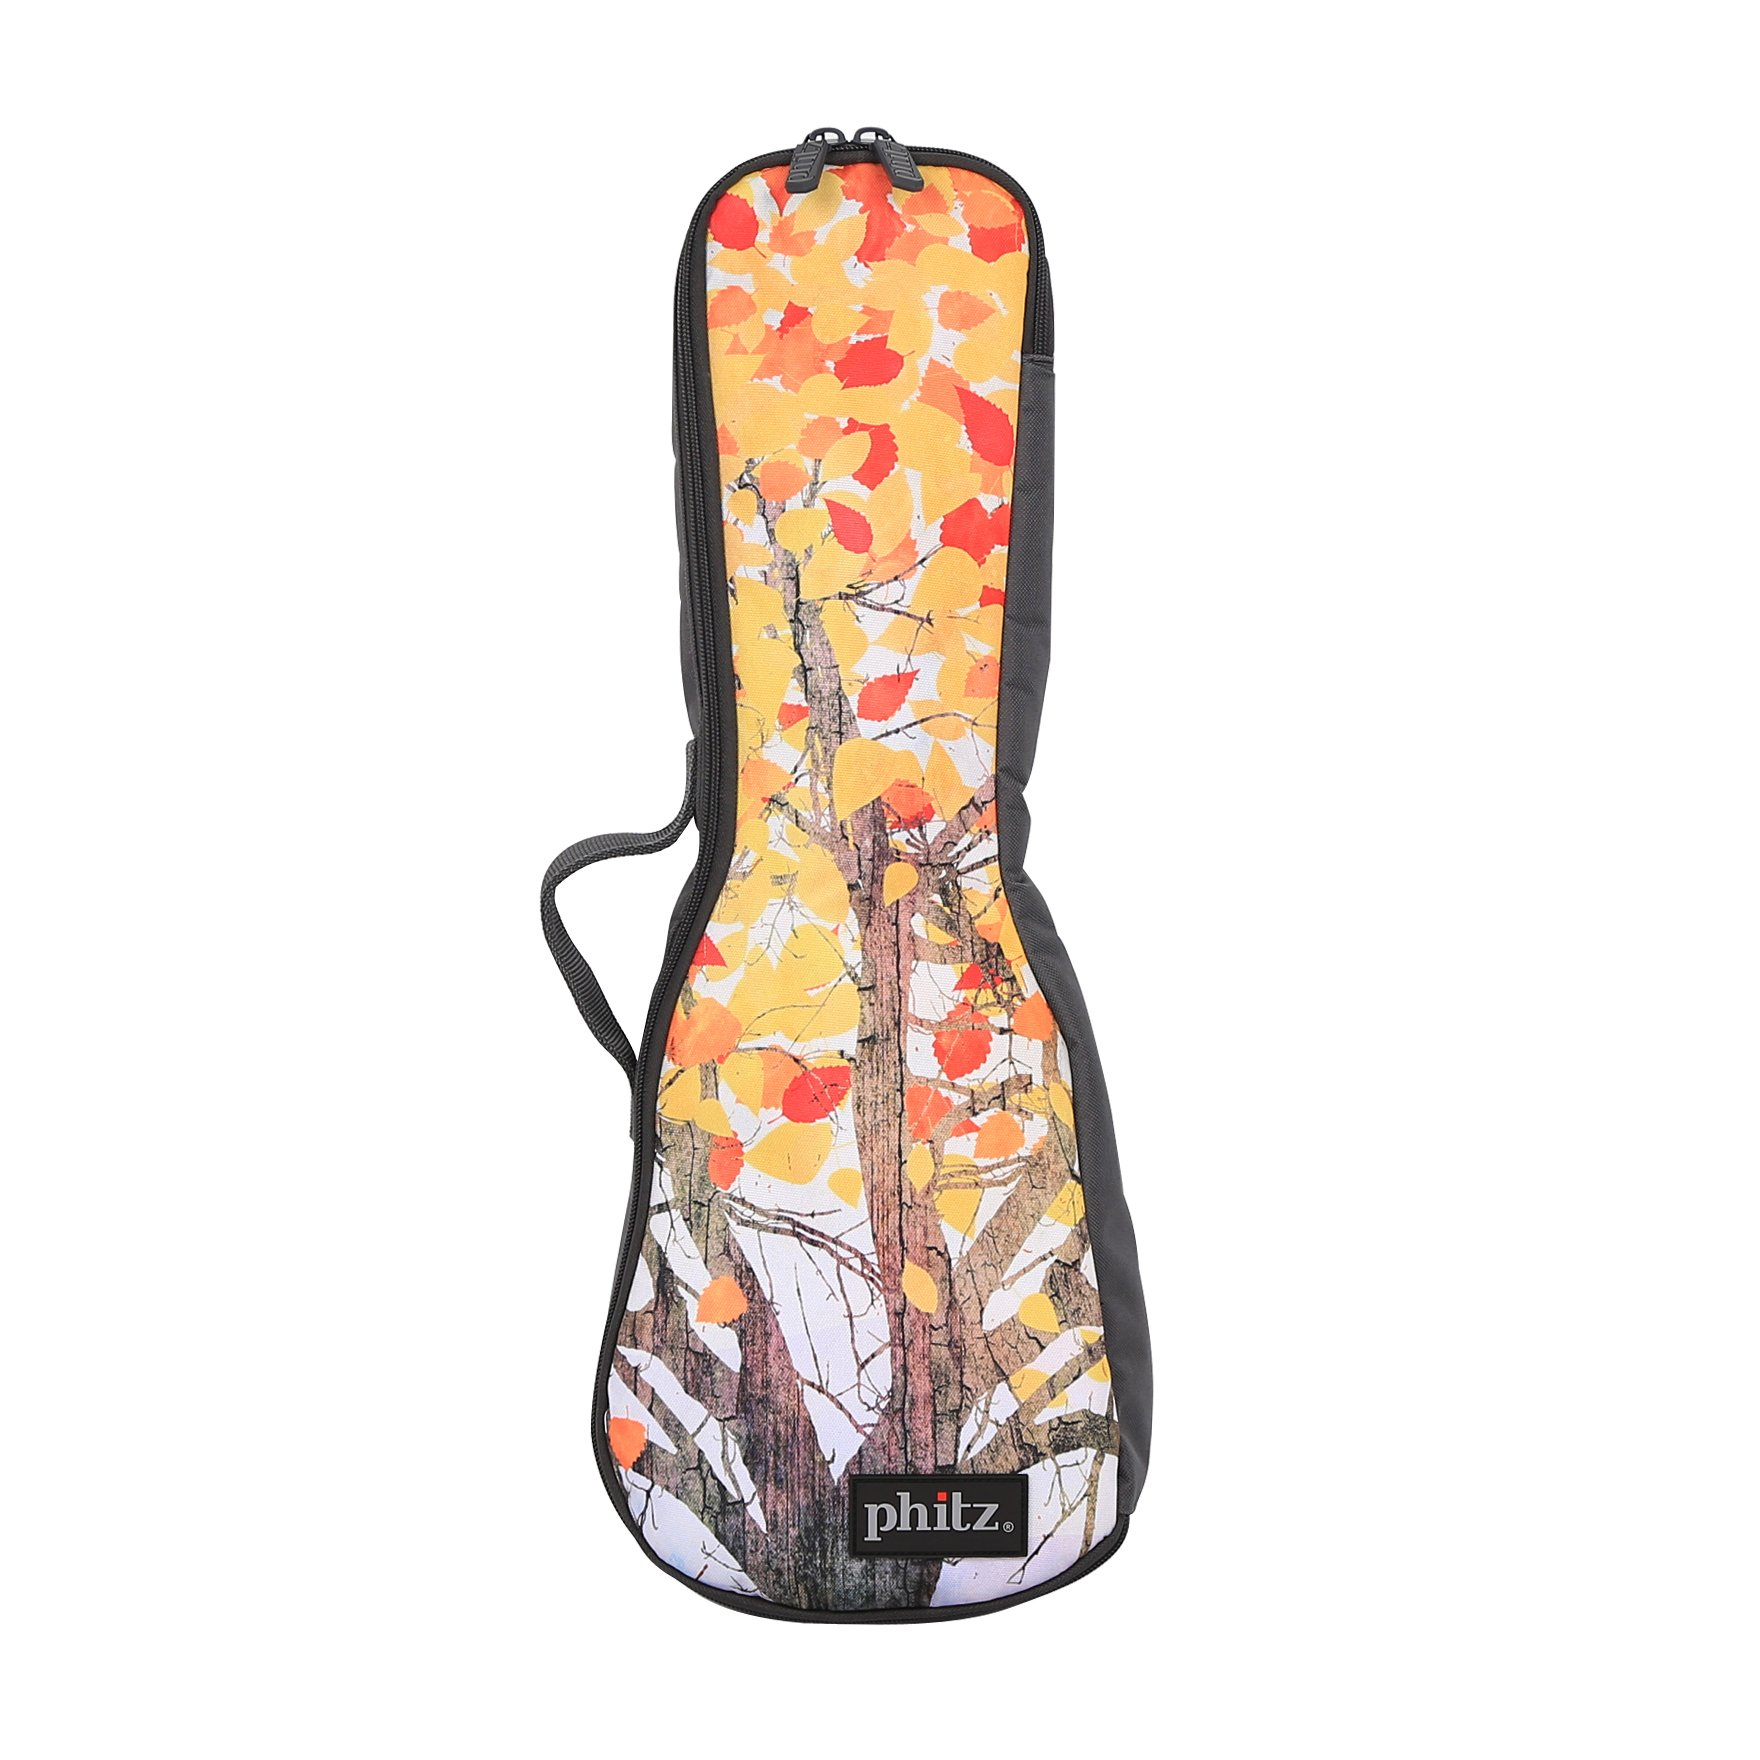 Concert Ukulele Case—Padded, Soft Carrying Gig Bag with Large Back Strap, Comfortably Tote and Protect your Uke On-The-Go, Yellow Leaves by Phitz